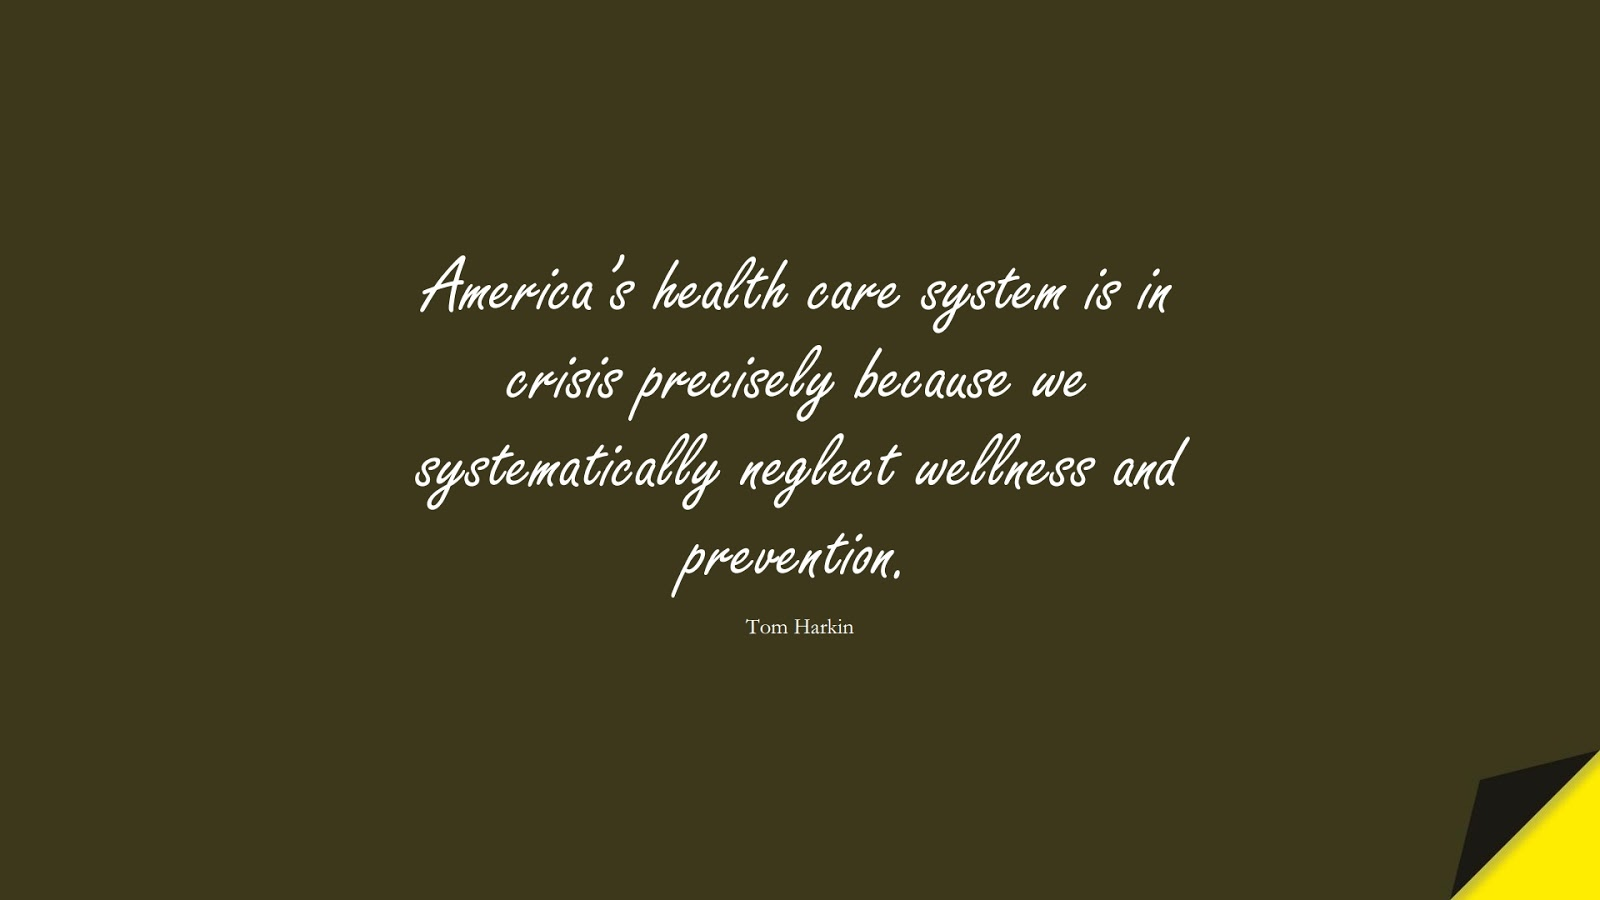 America's health care system is in crisis precisely because we systematically neglect wellness and prevention. (Tom Harkin);  #HealthQuotes